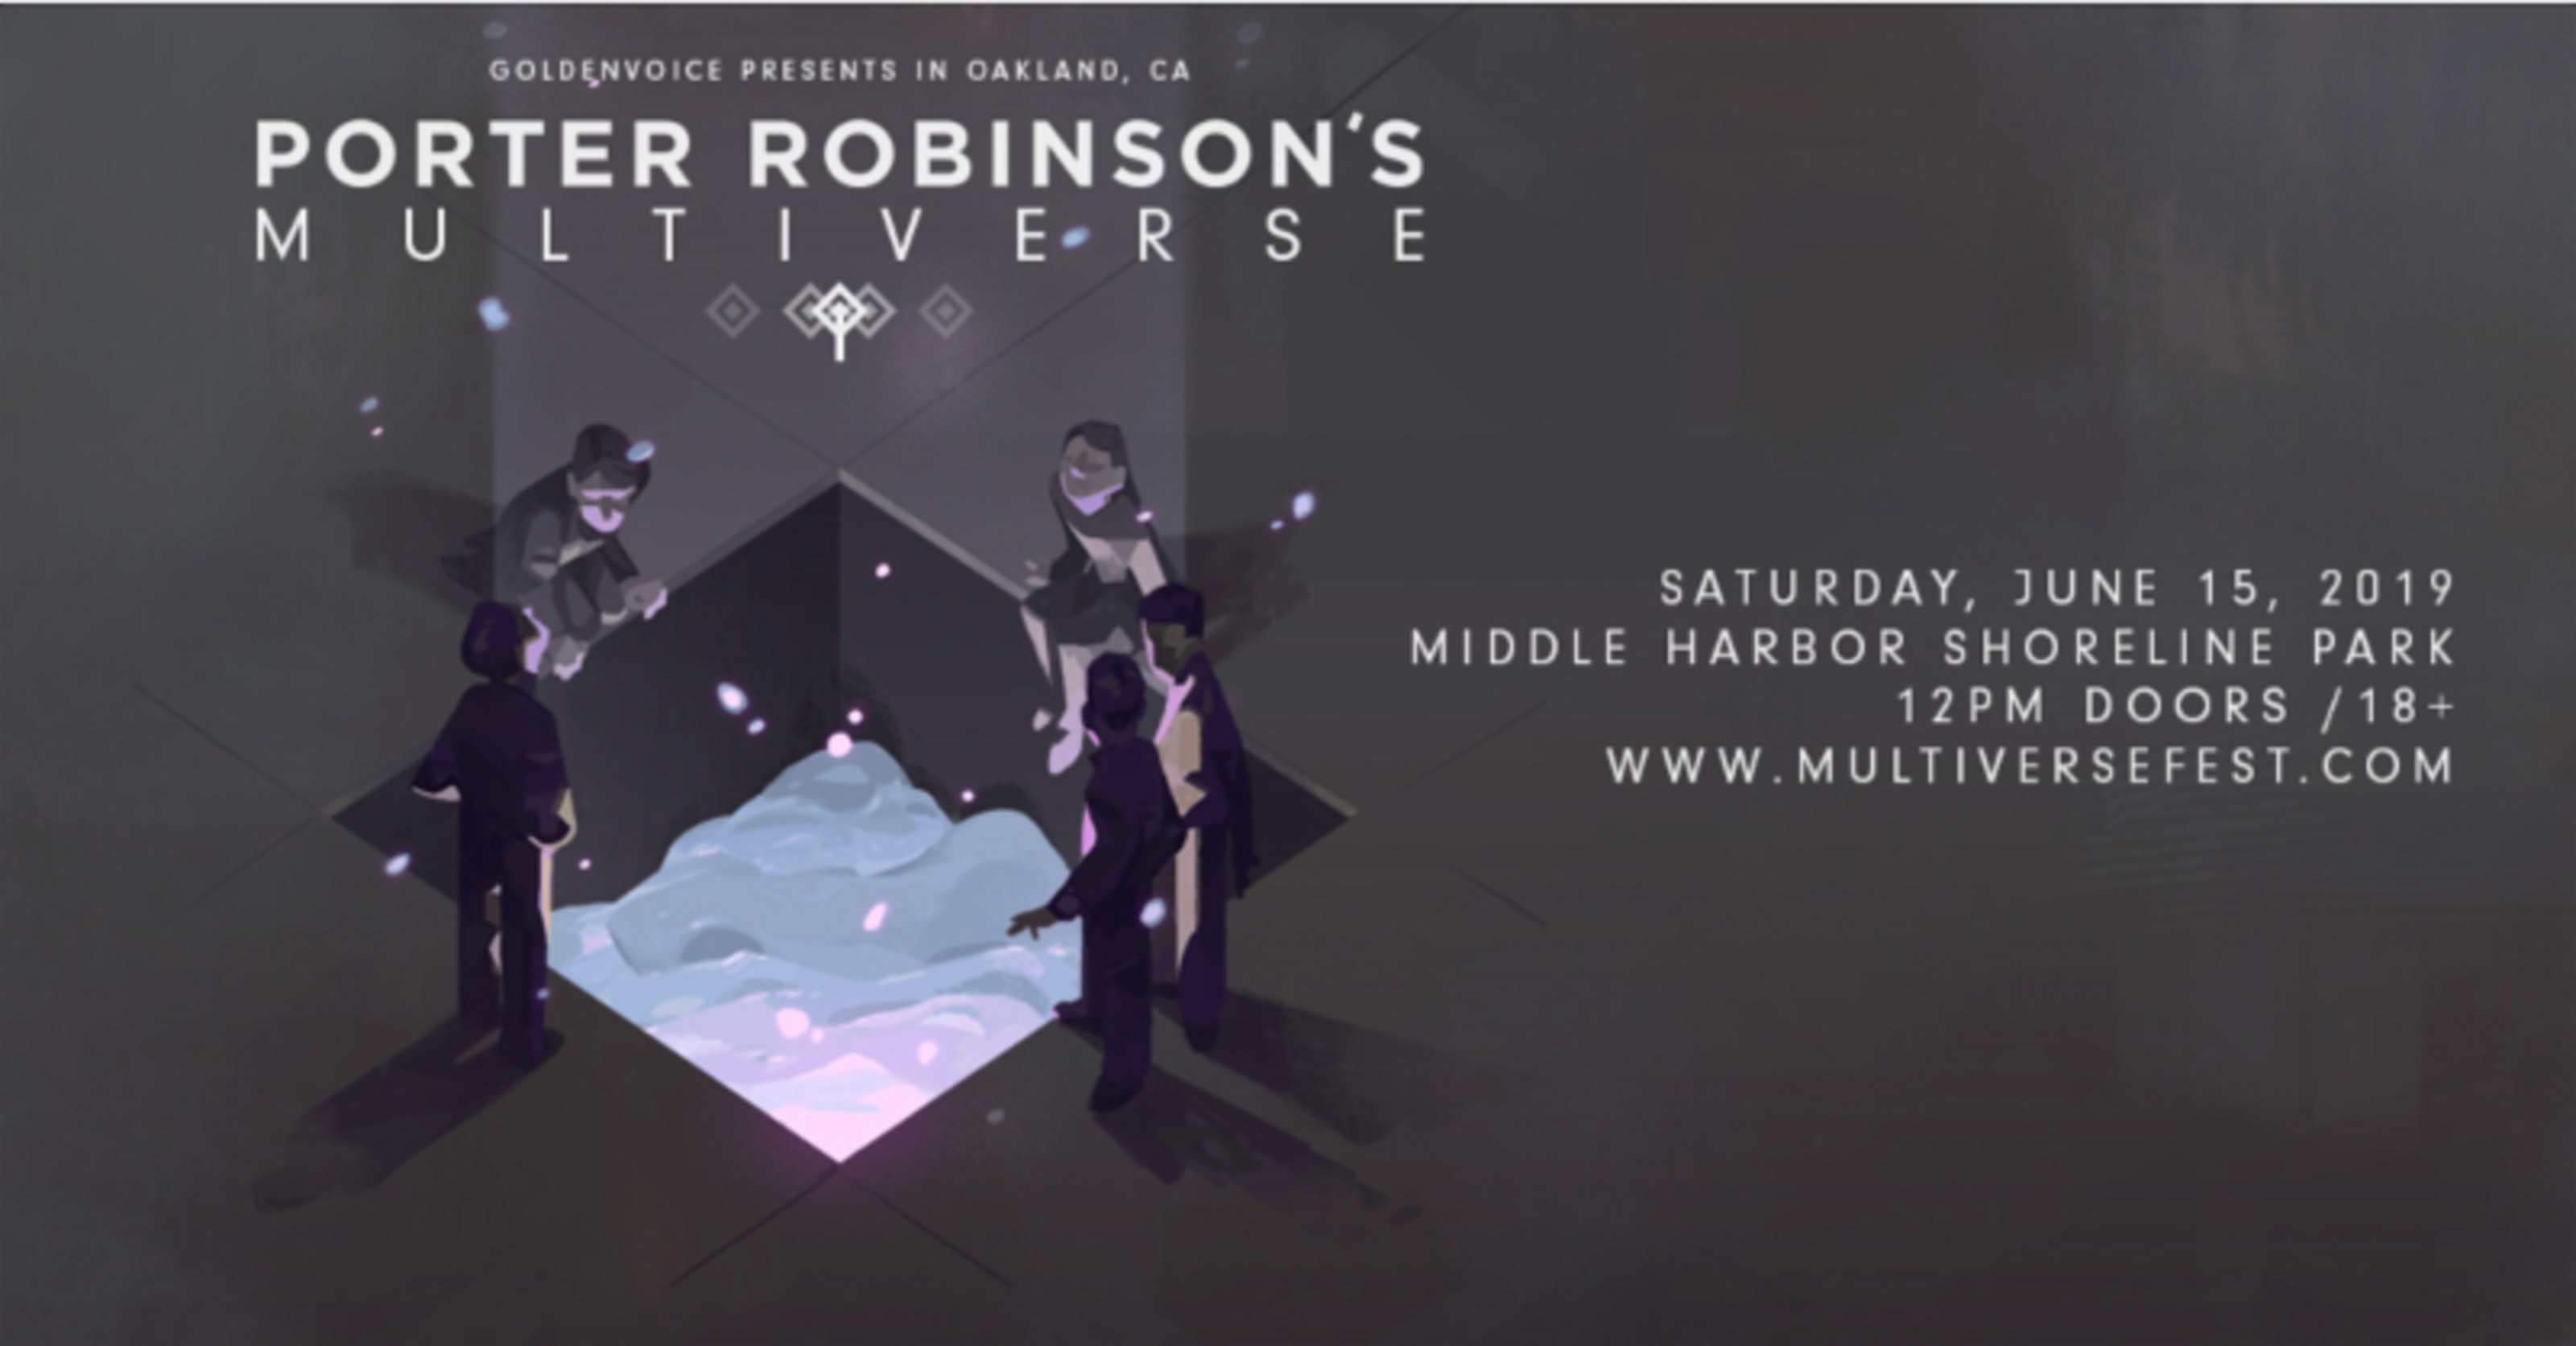 PORTER ROBINSON'S MULTIVERSE FESTIVAL - Saturday, June 15